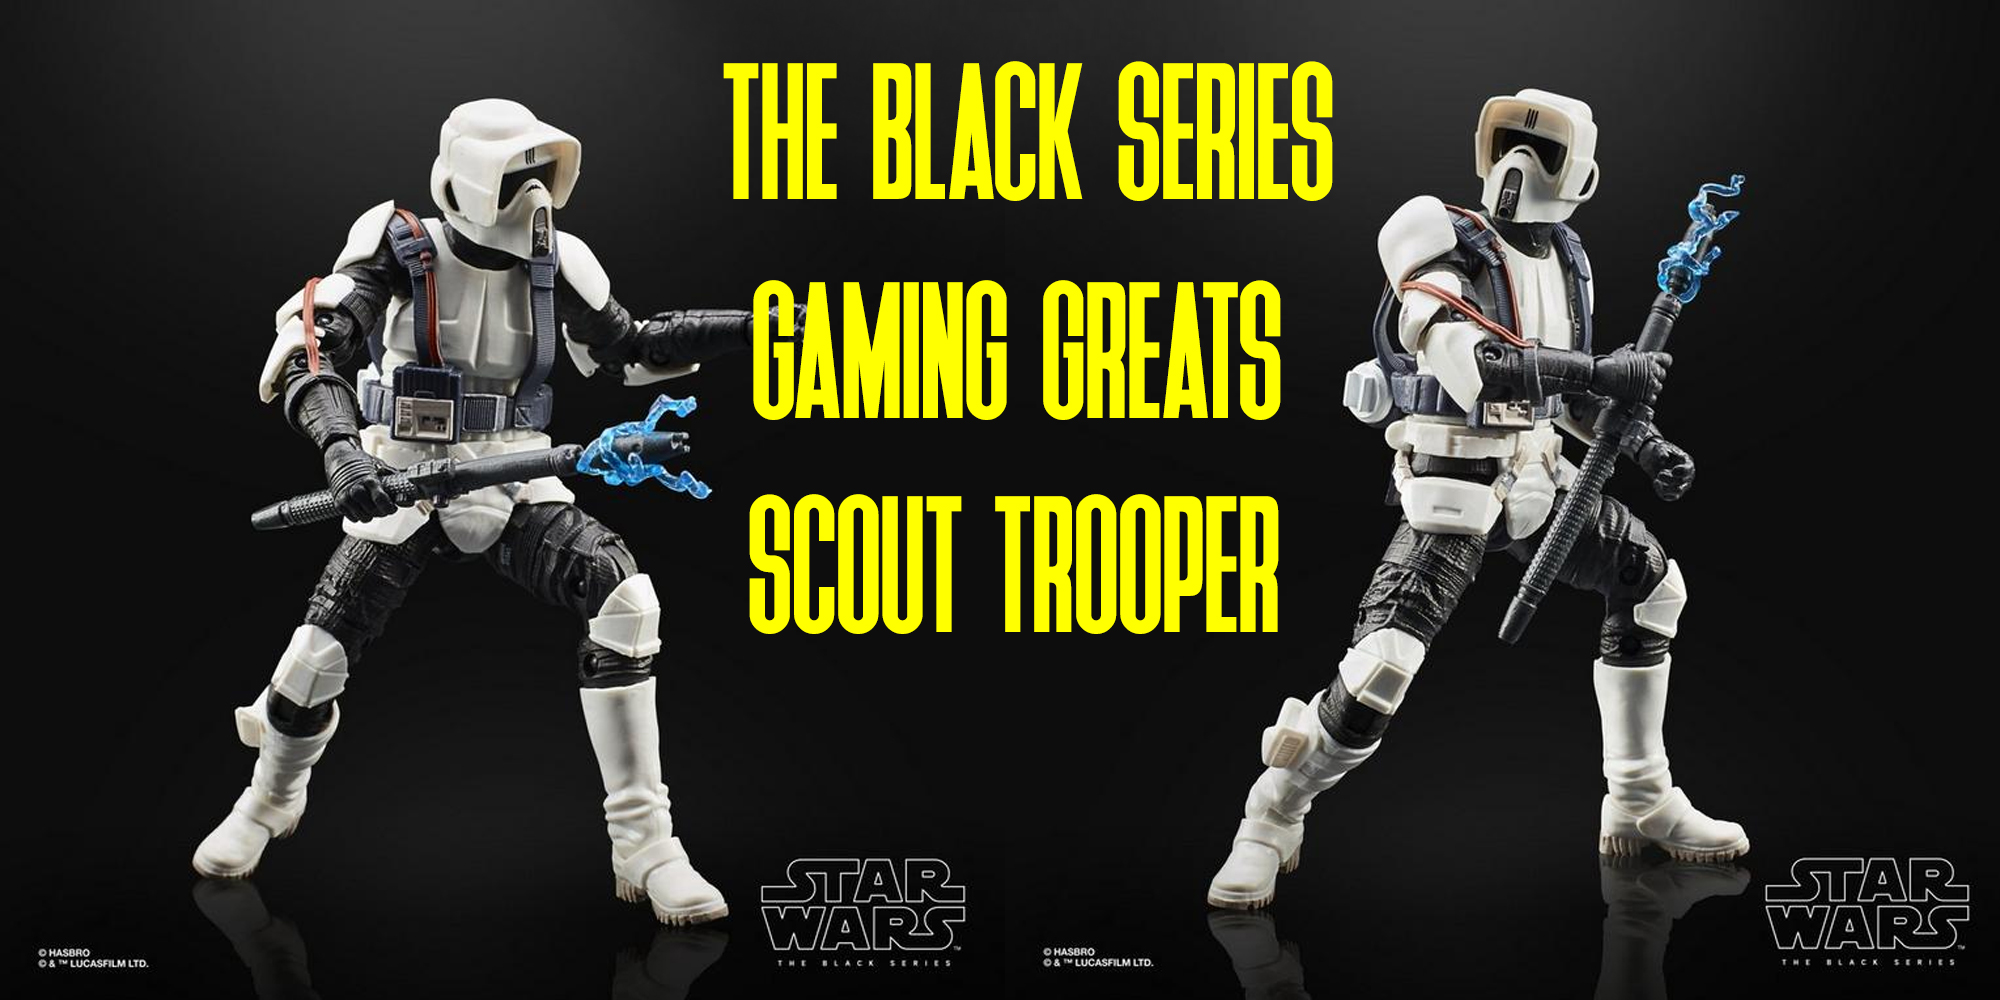 Black Series Scout Trooper